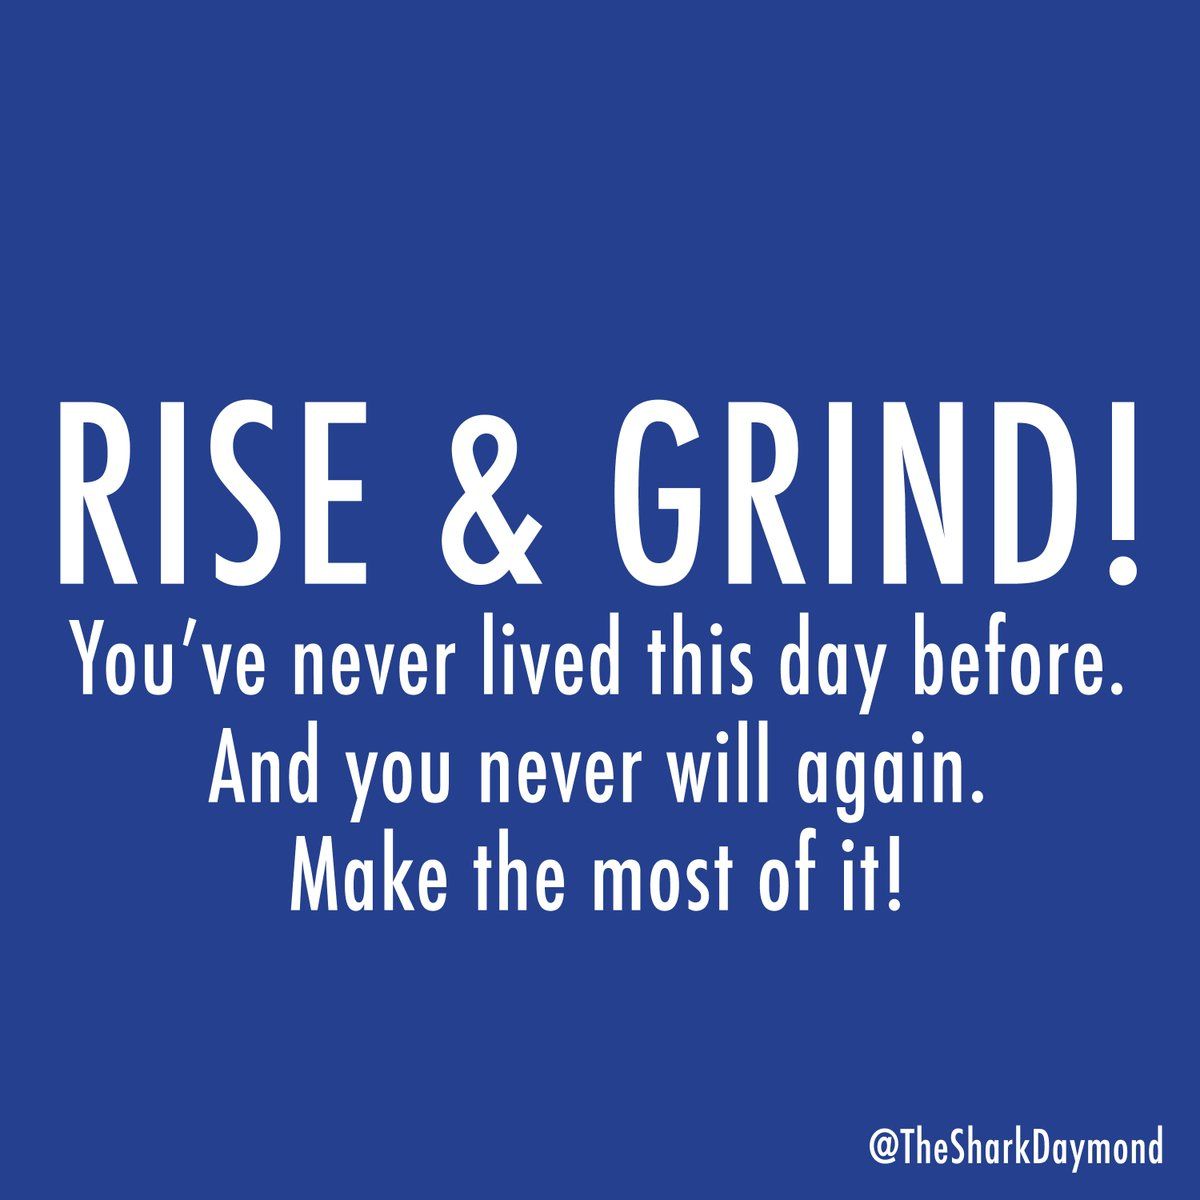 Make the most of today. #RiseAndGrind